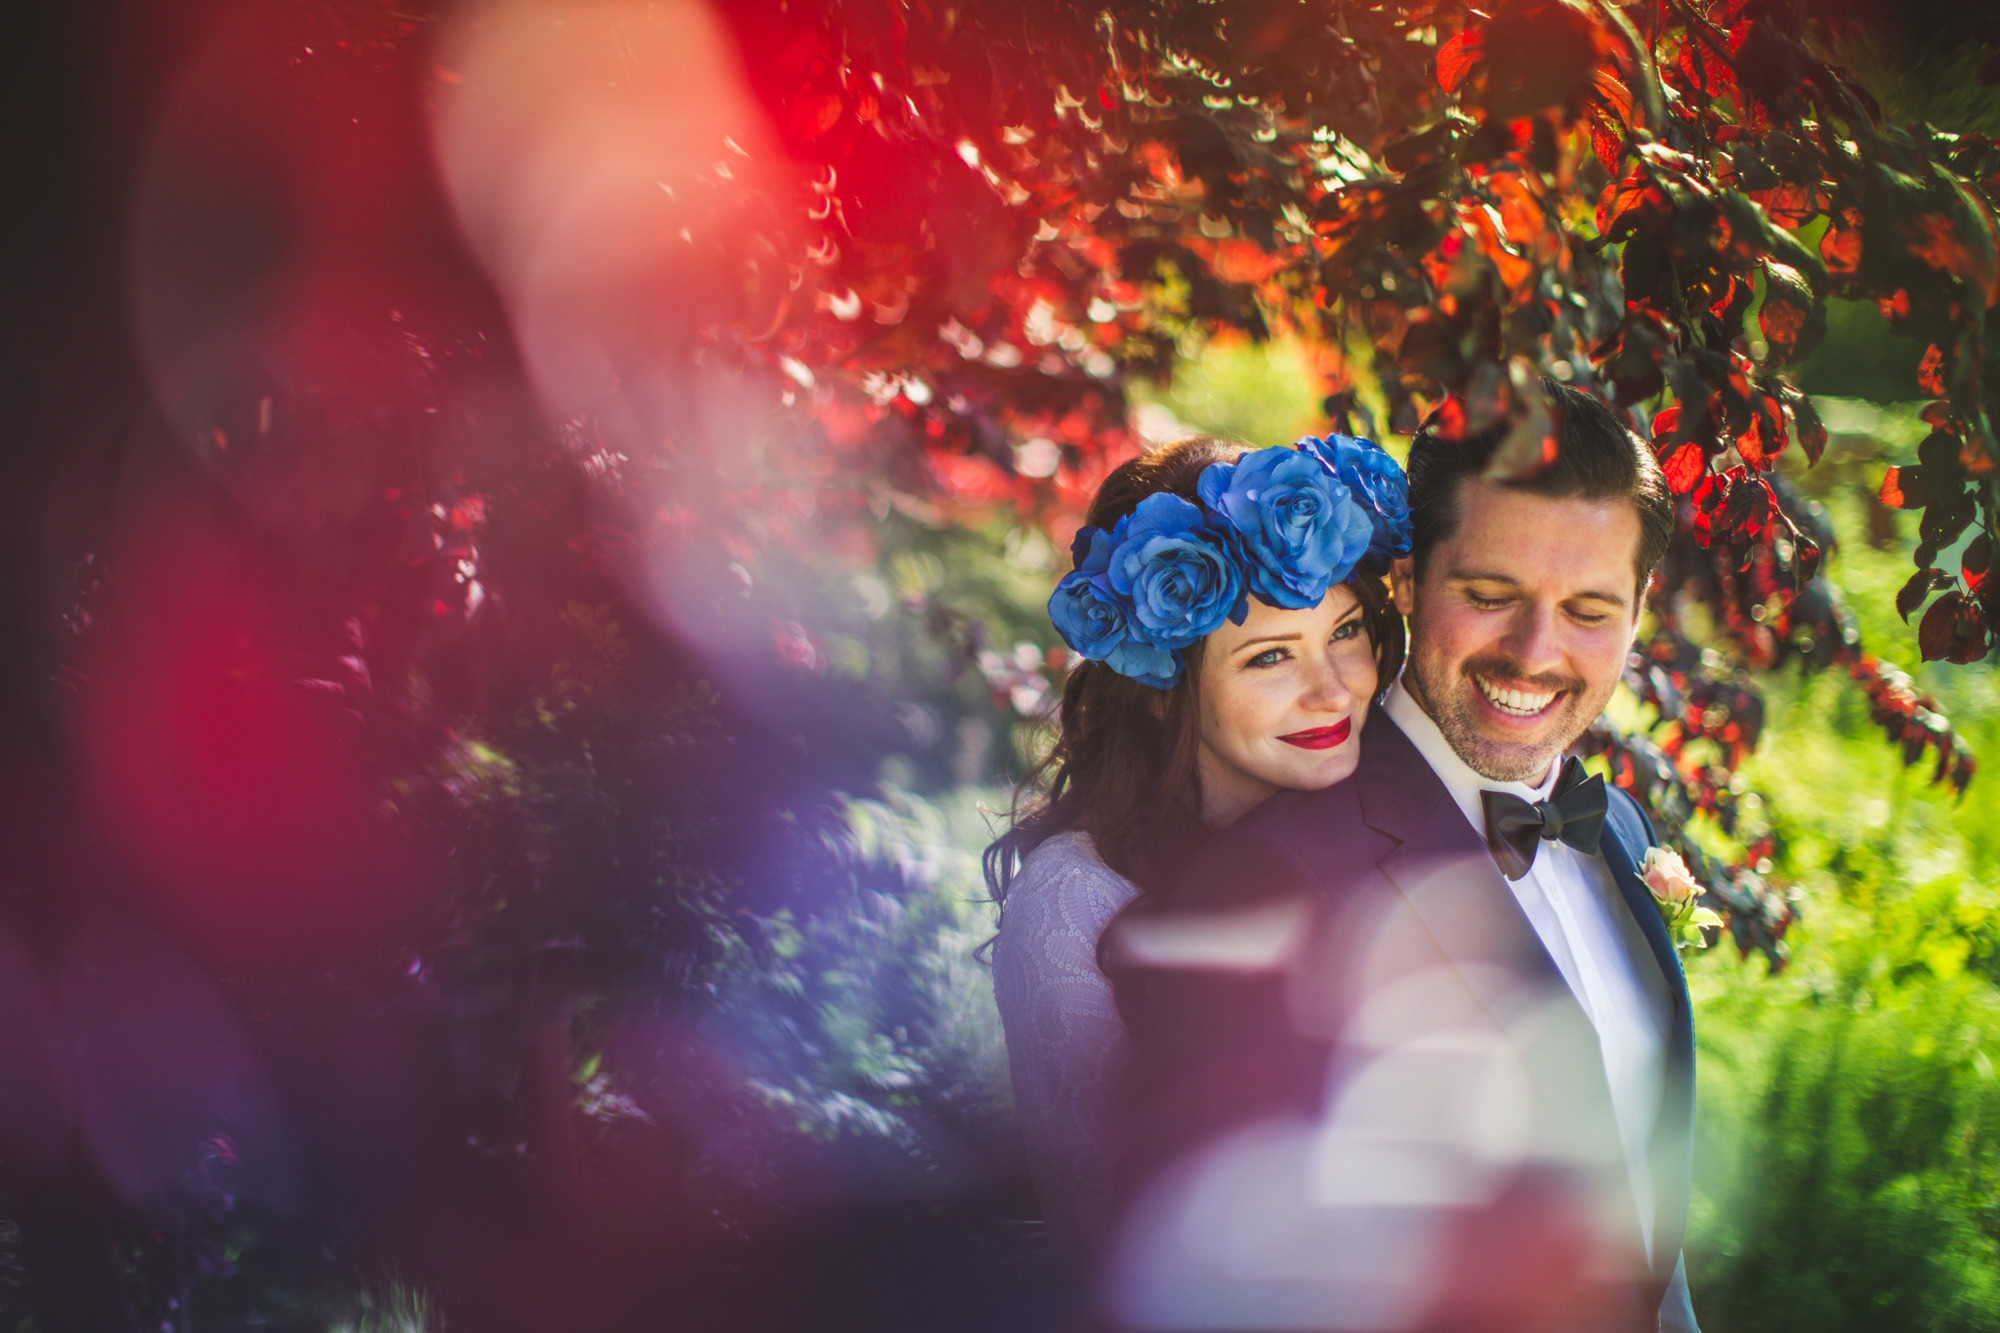 Couple portrait with bride in blue rose crown, by Jeff Newsom